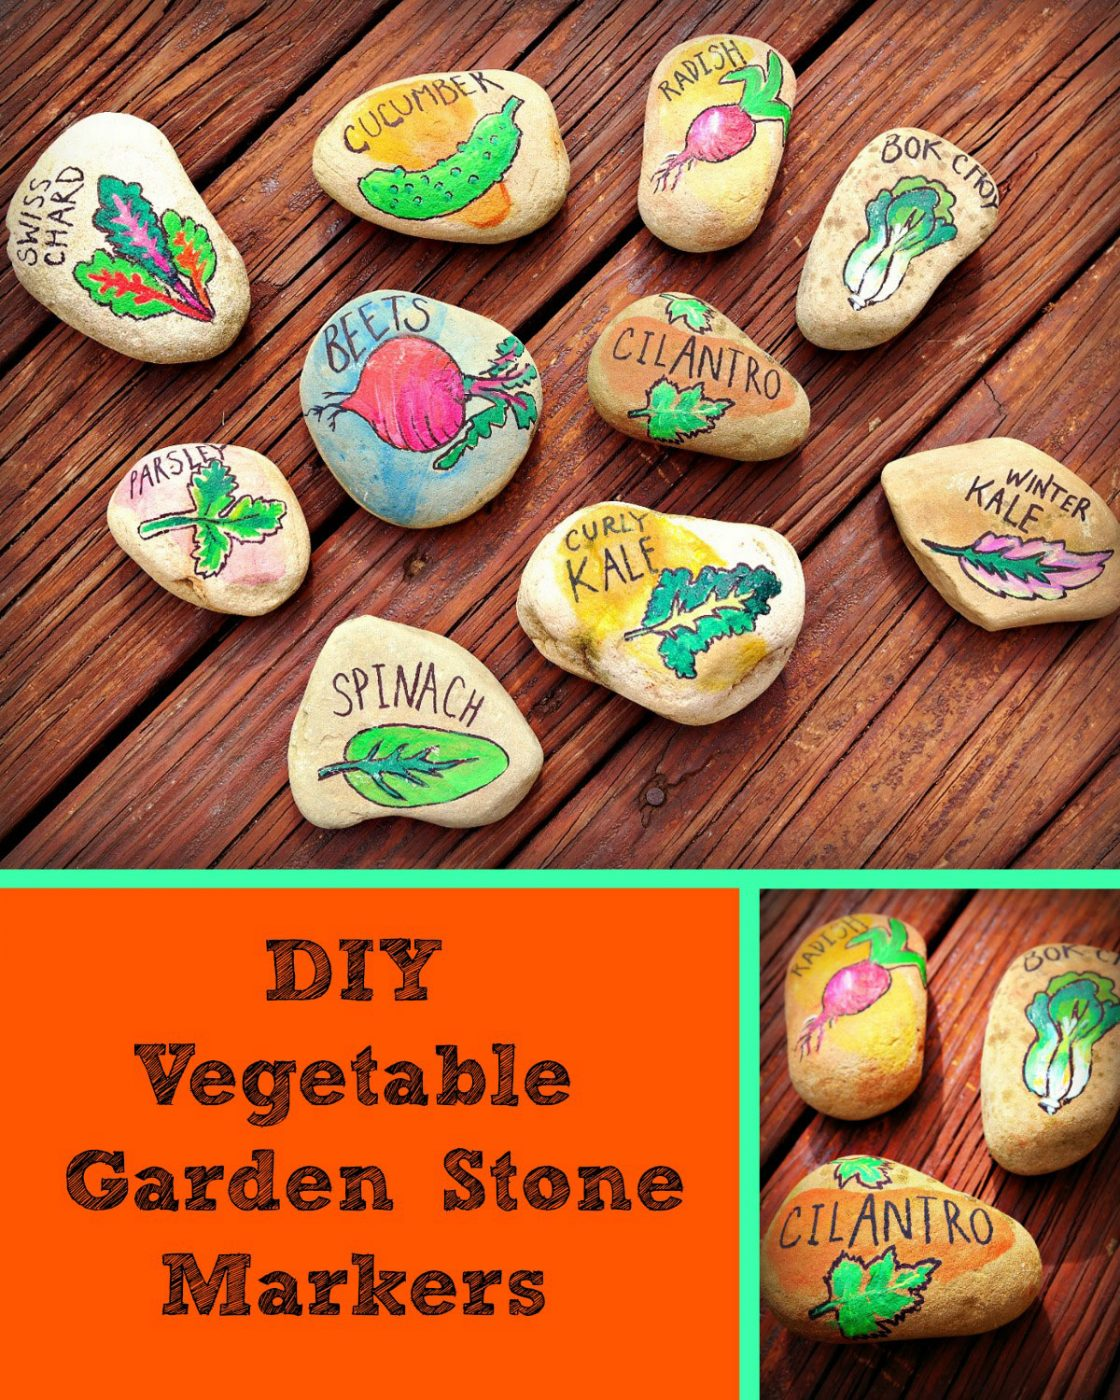 Diy vegetable garden stone markers painted pomegranate for Diy vegetable garden